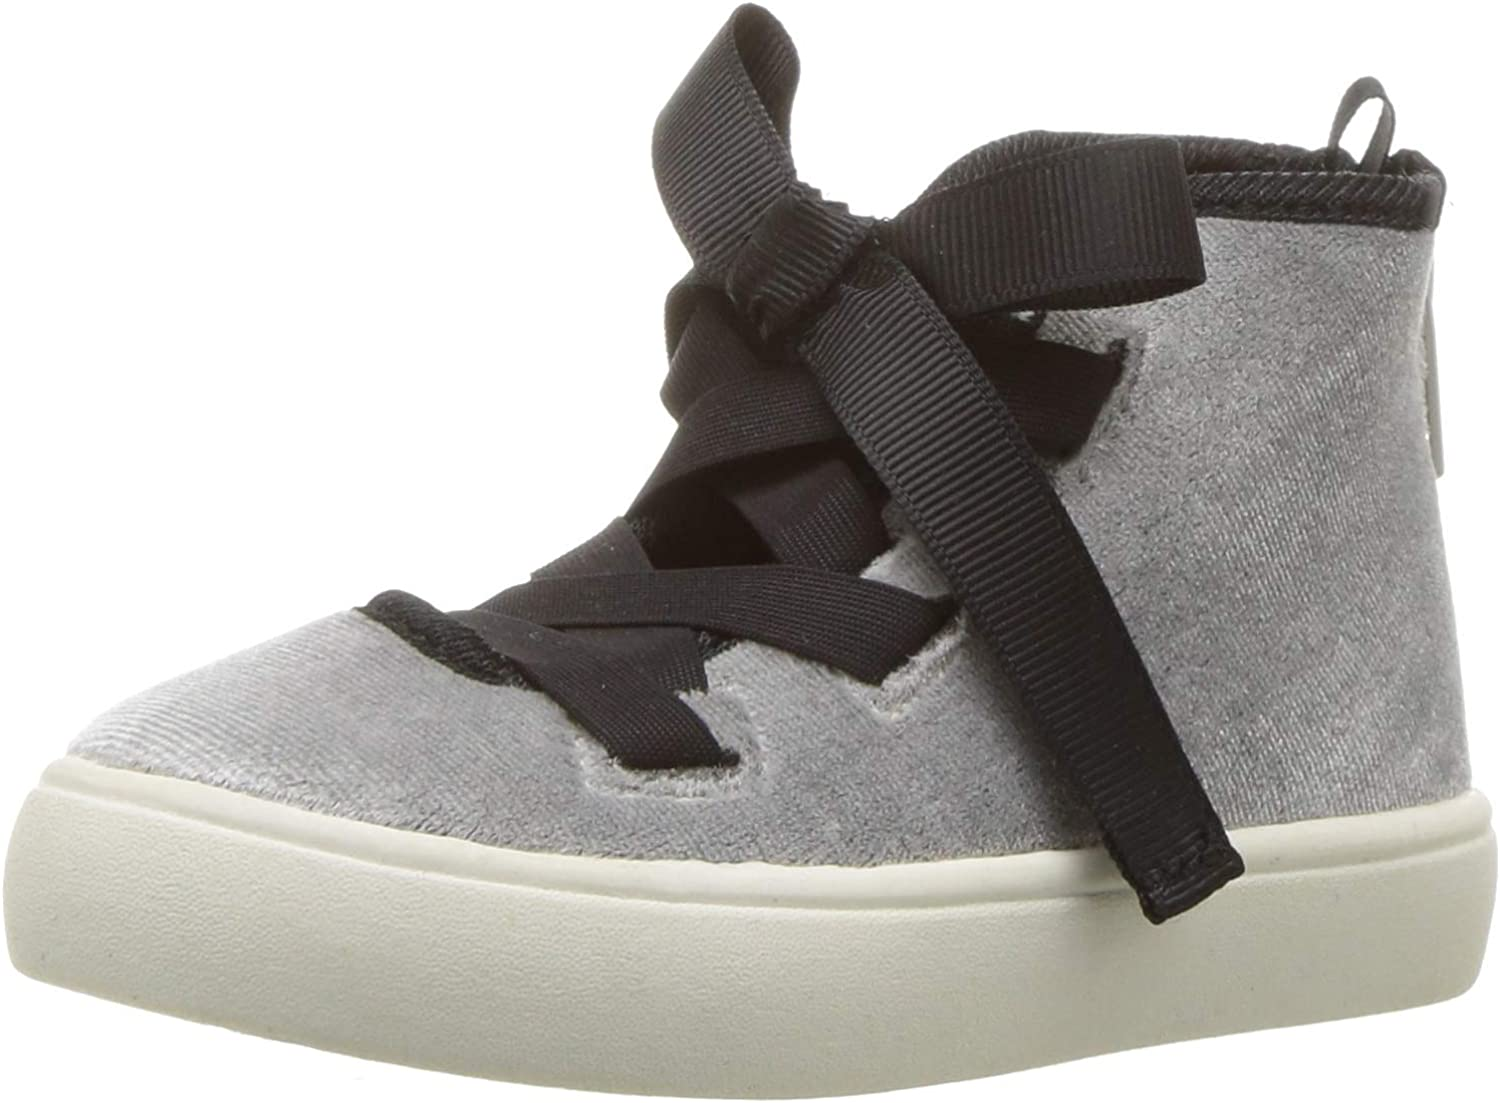 Carter's Unisex-Child Girl's Anisha Sale special price High-top Grey Casual Very popular Ballet